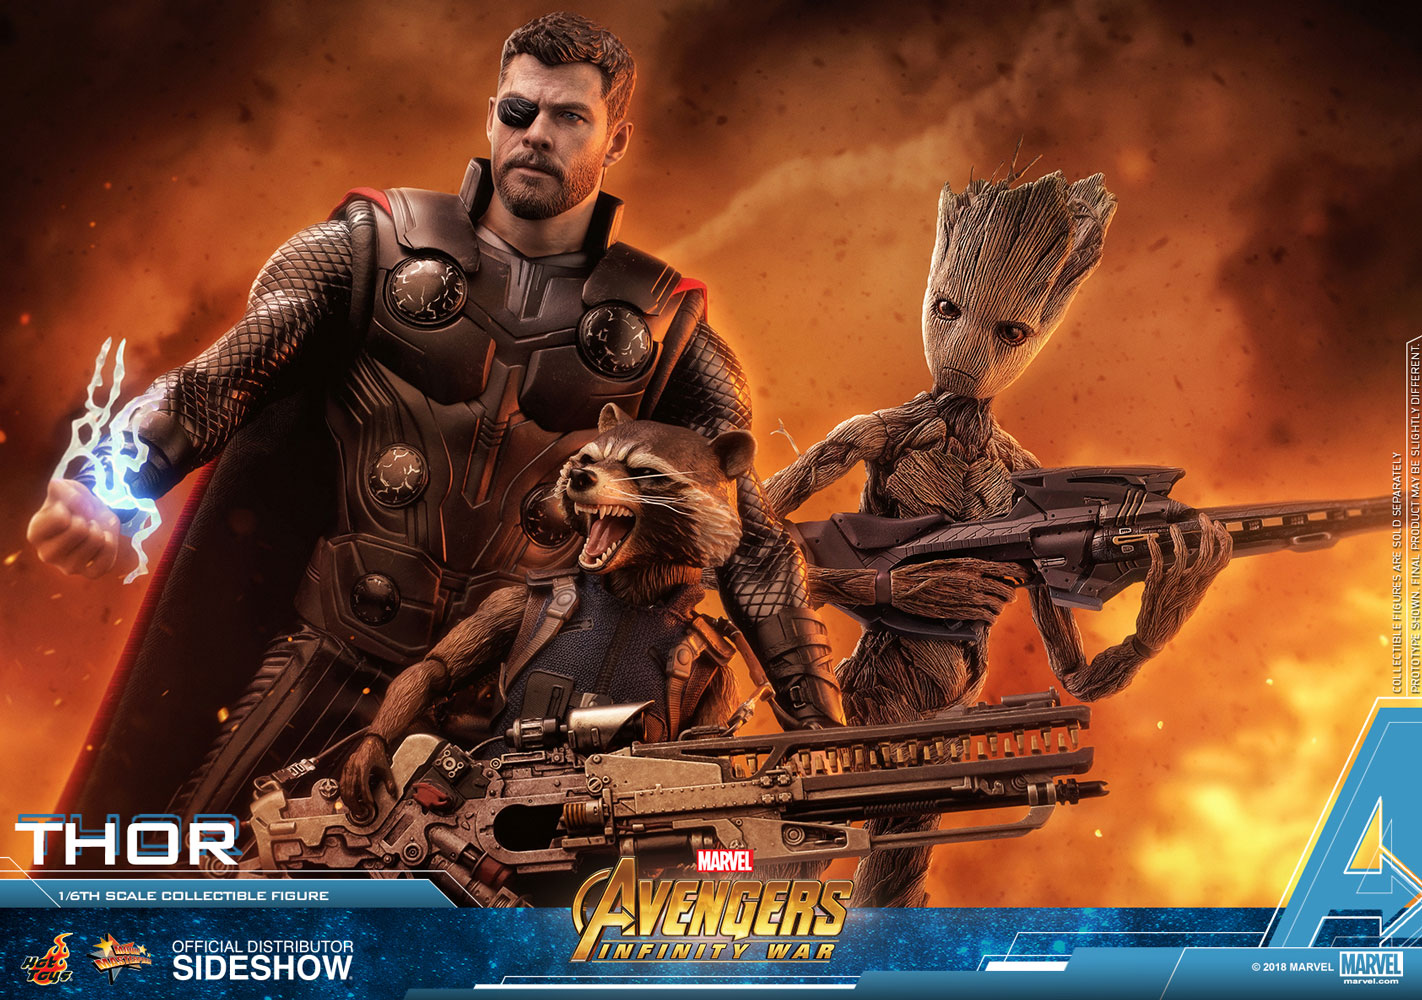 hot toys infinity war thor iron man 1 6 figures up for